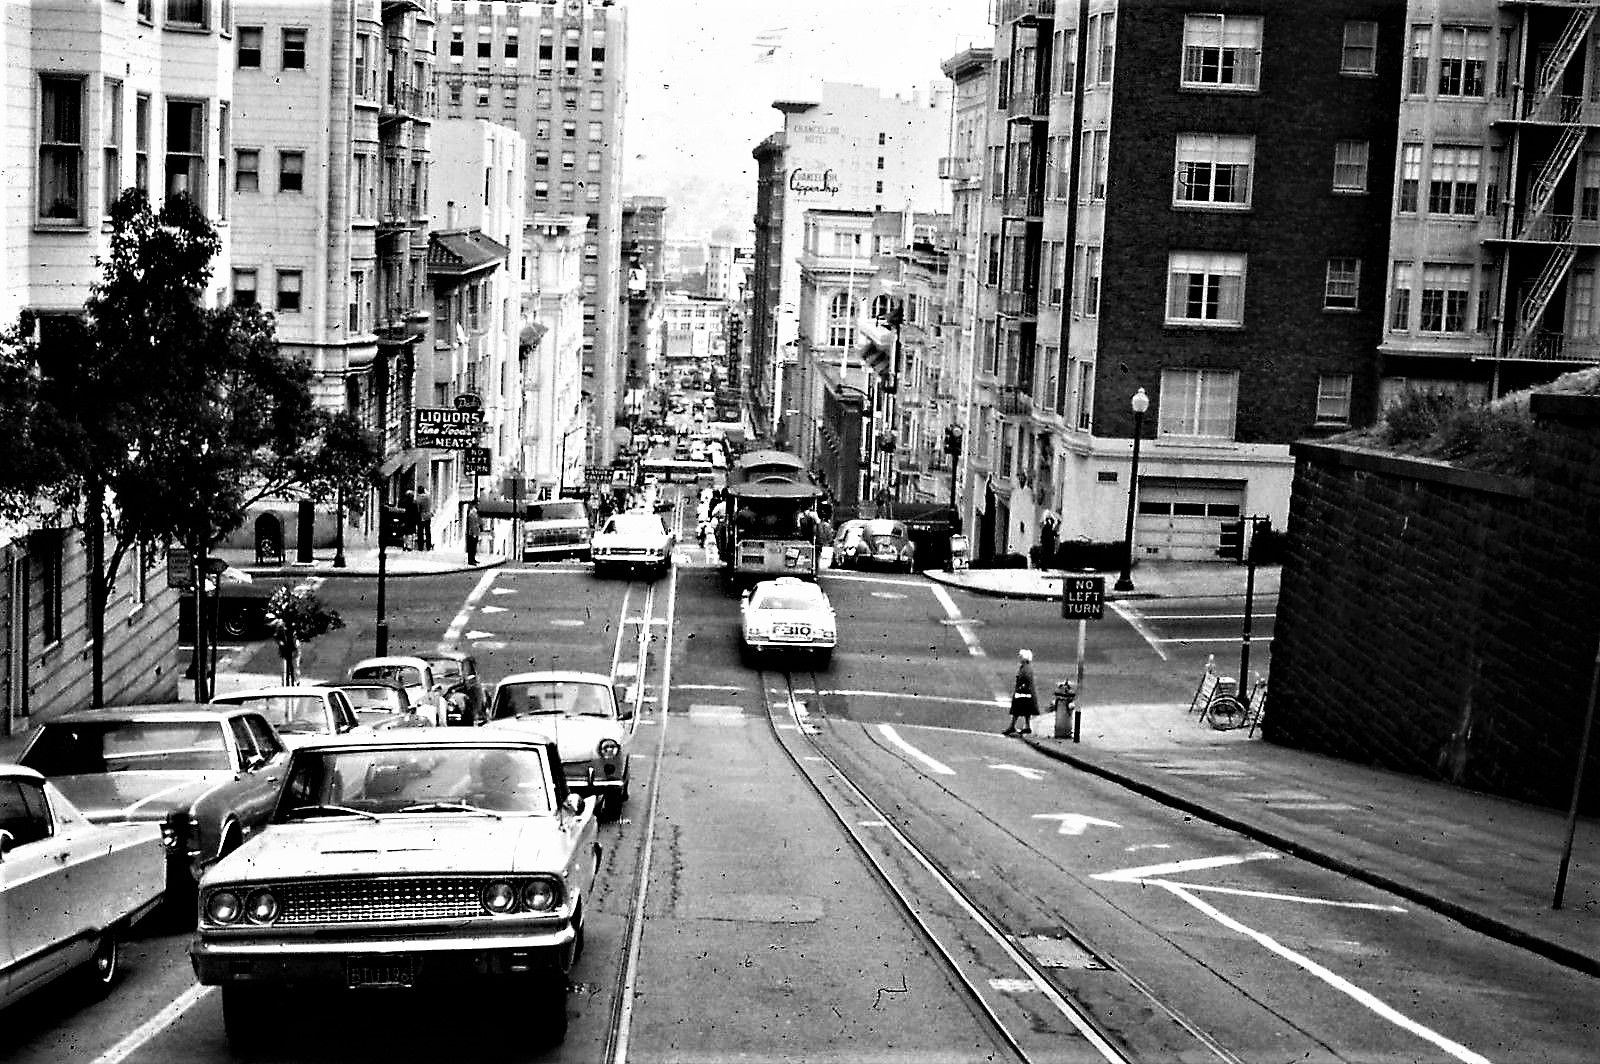 San Francisco in the 1970s